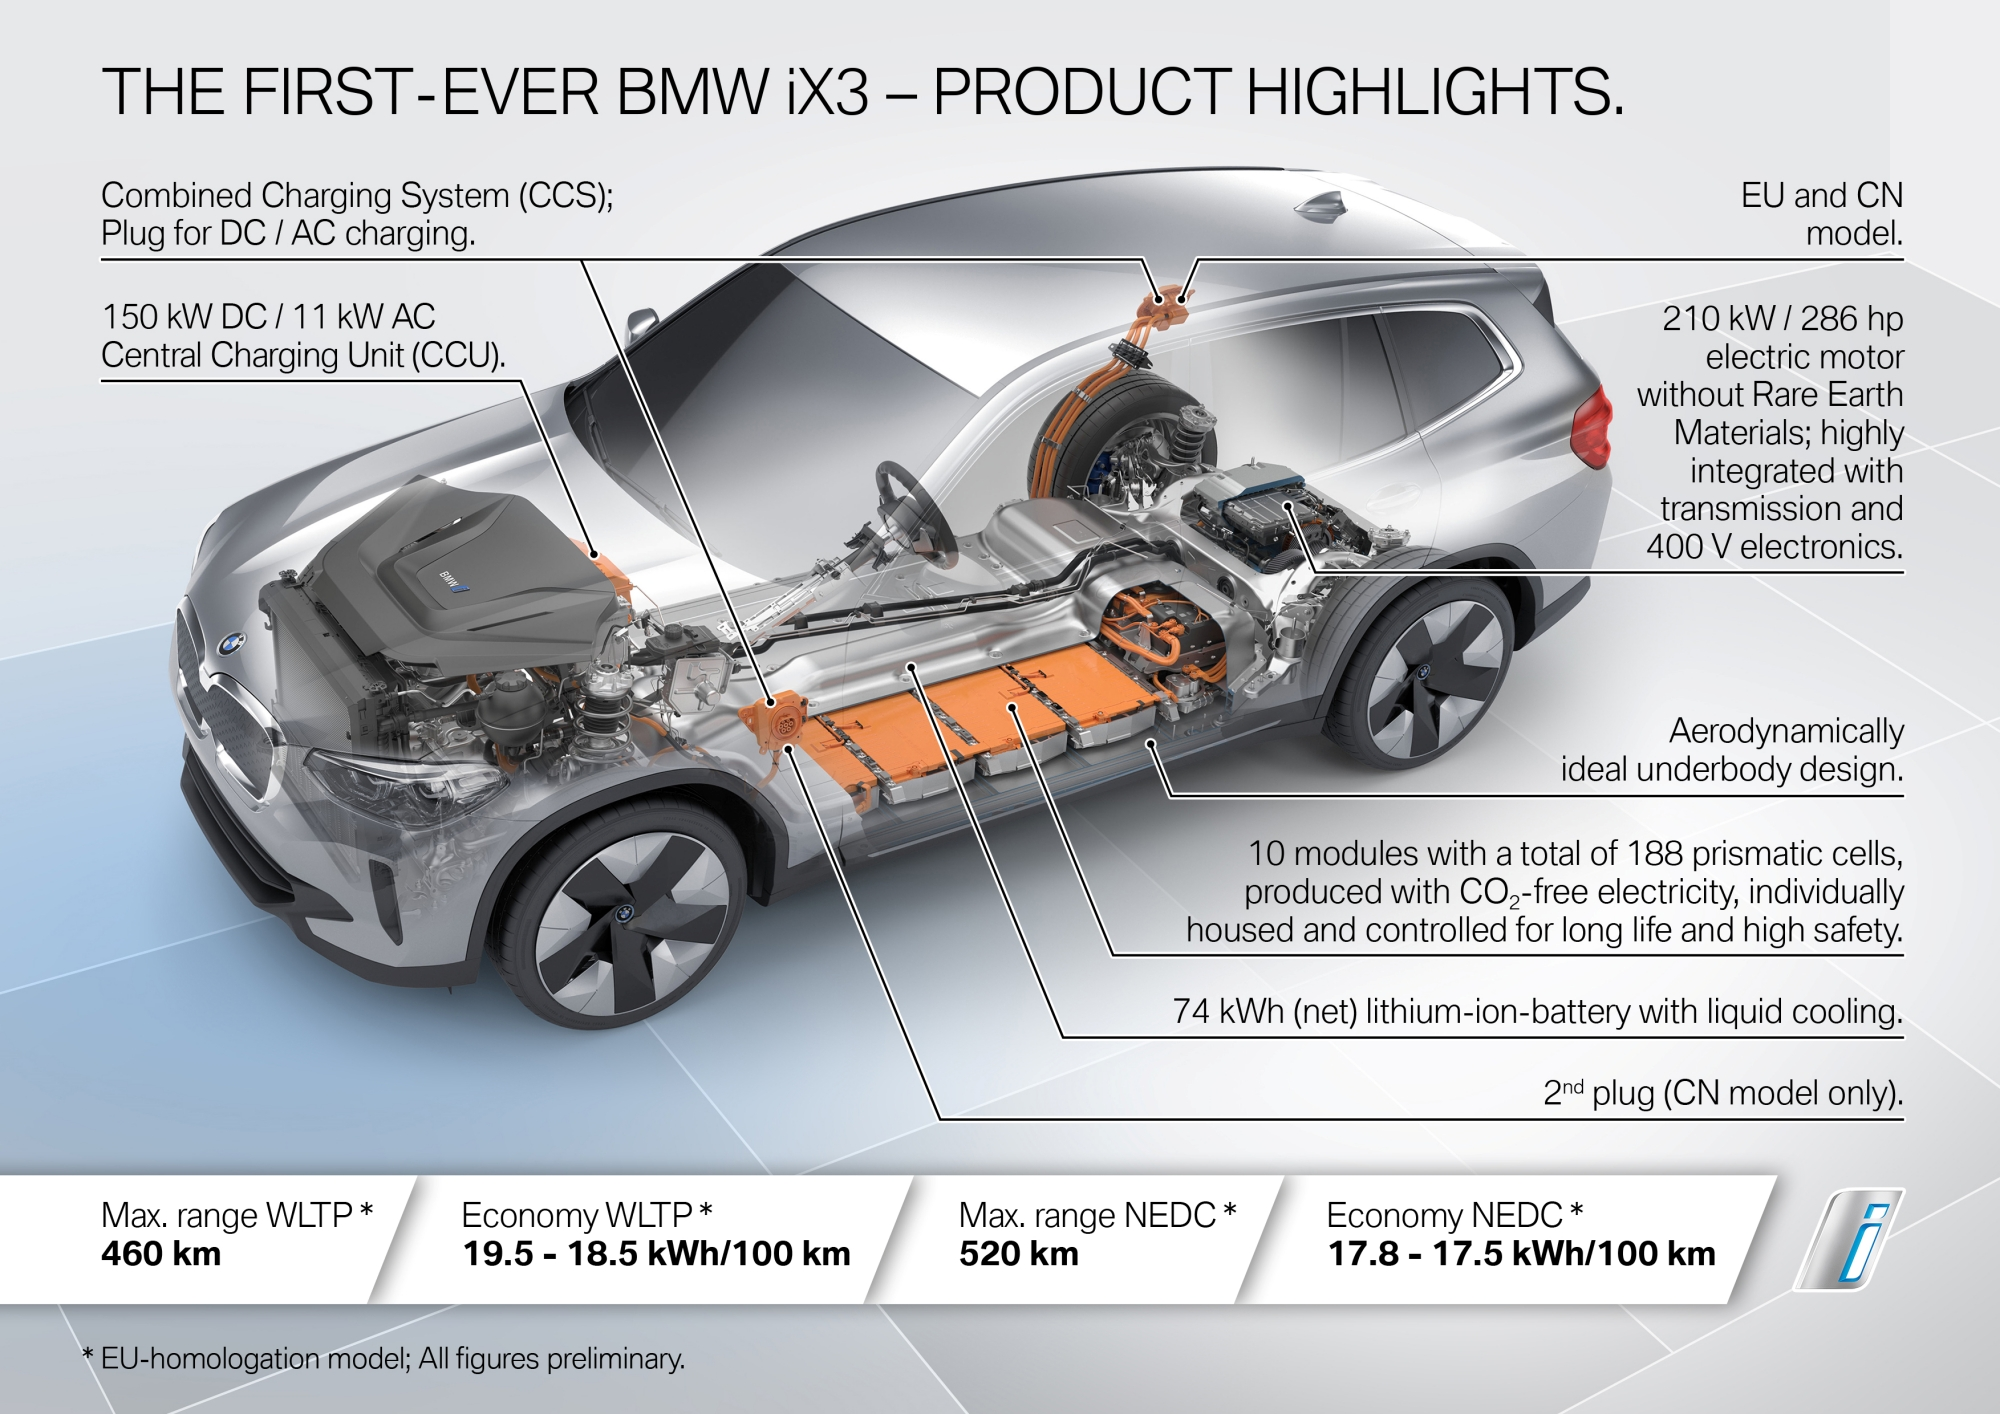 P90393412_highRes_the-first-ever-bmw-i